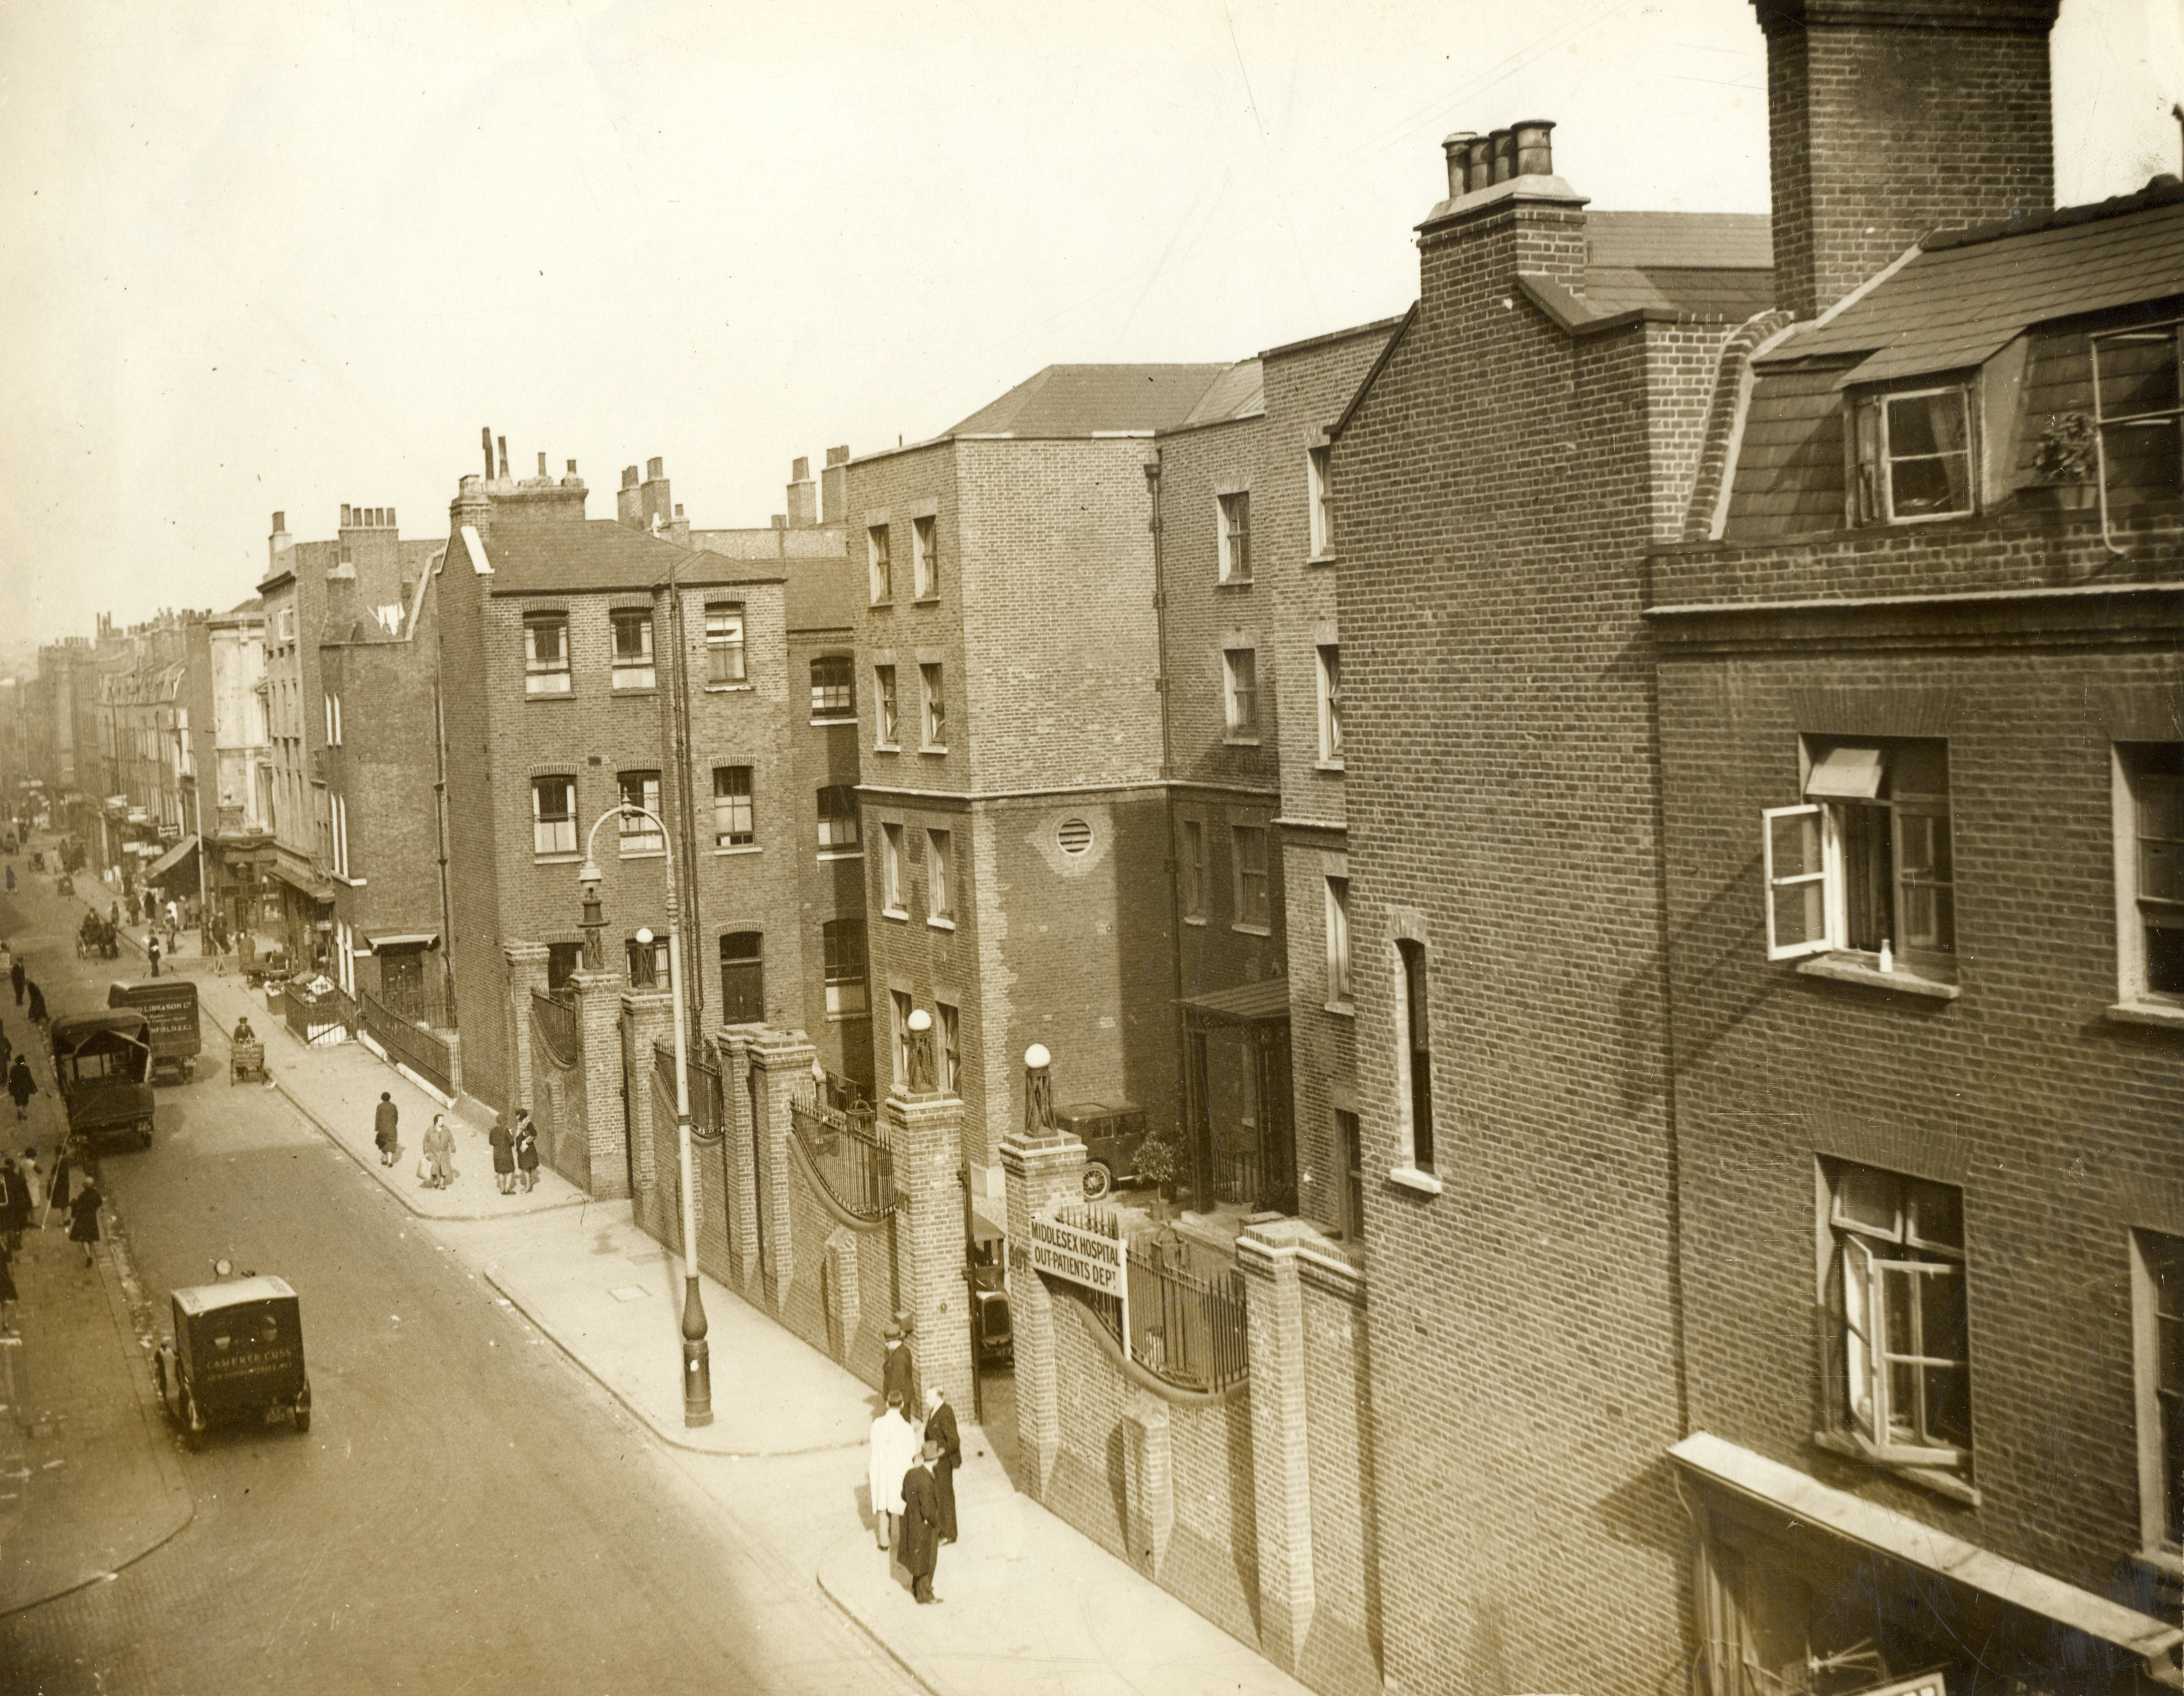 View of Cleveland Street in the 1930s. The workhouse is in the middle of the picture. Source: Wikimeda Commons